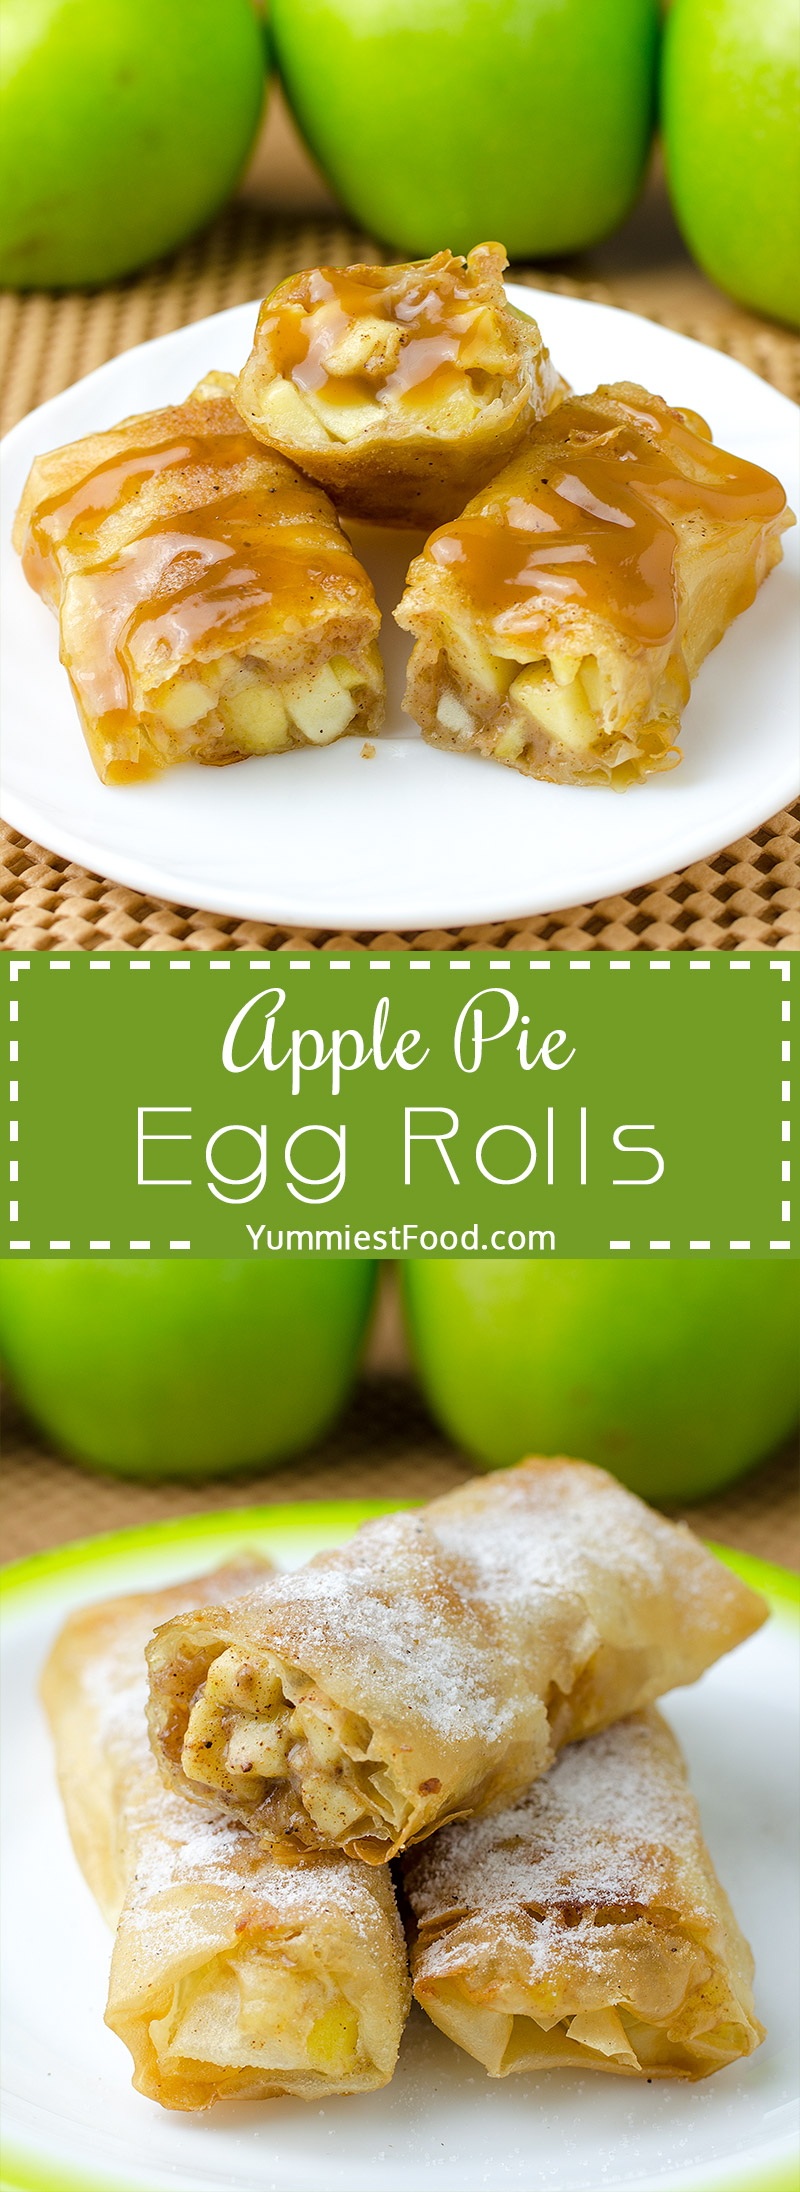 Apple Pie Egg Rolls - if you like apple and cinnamon combination, this recipe is perfect for you.